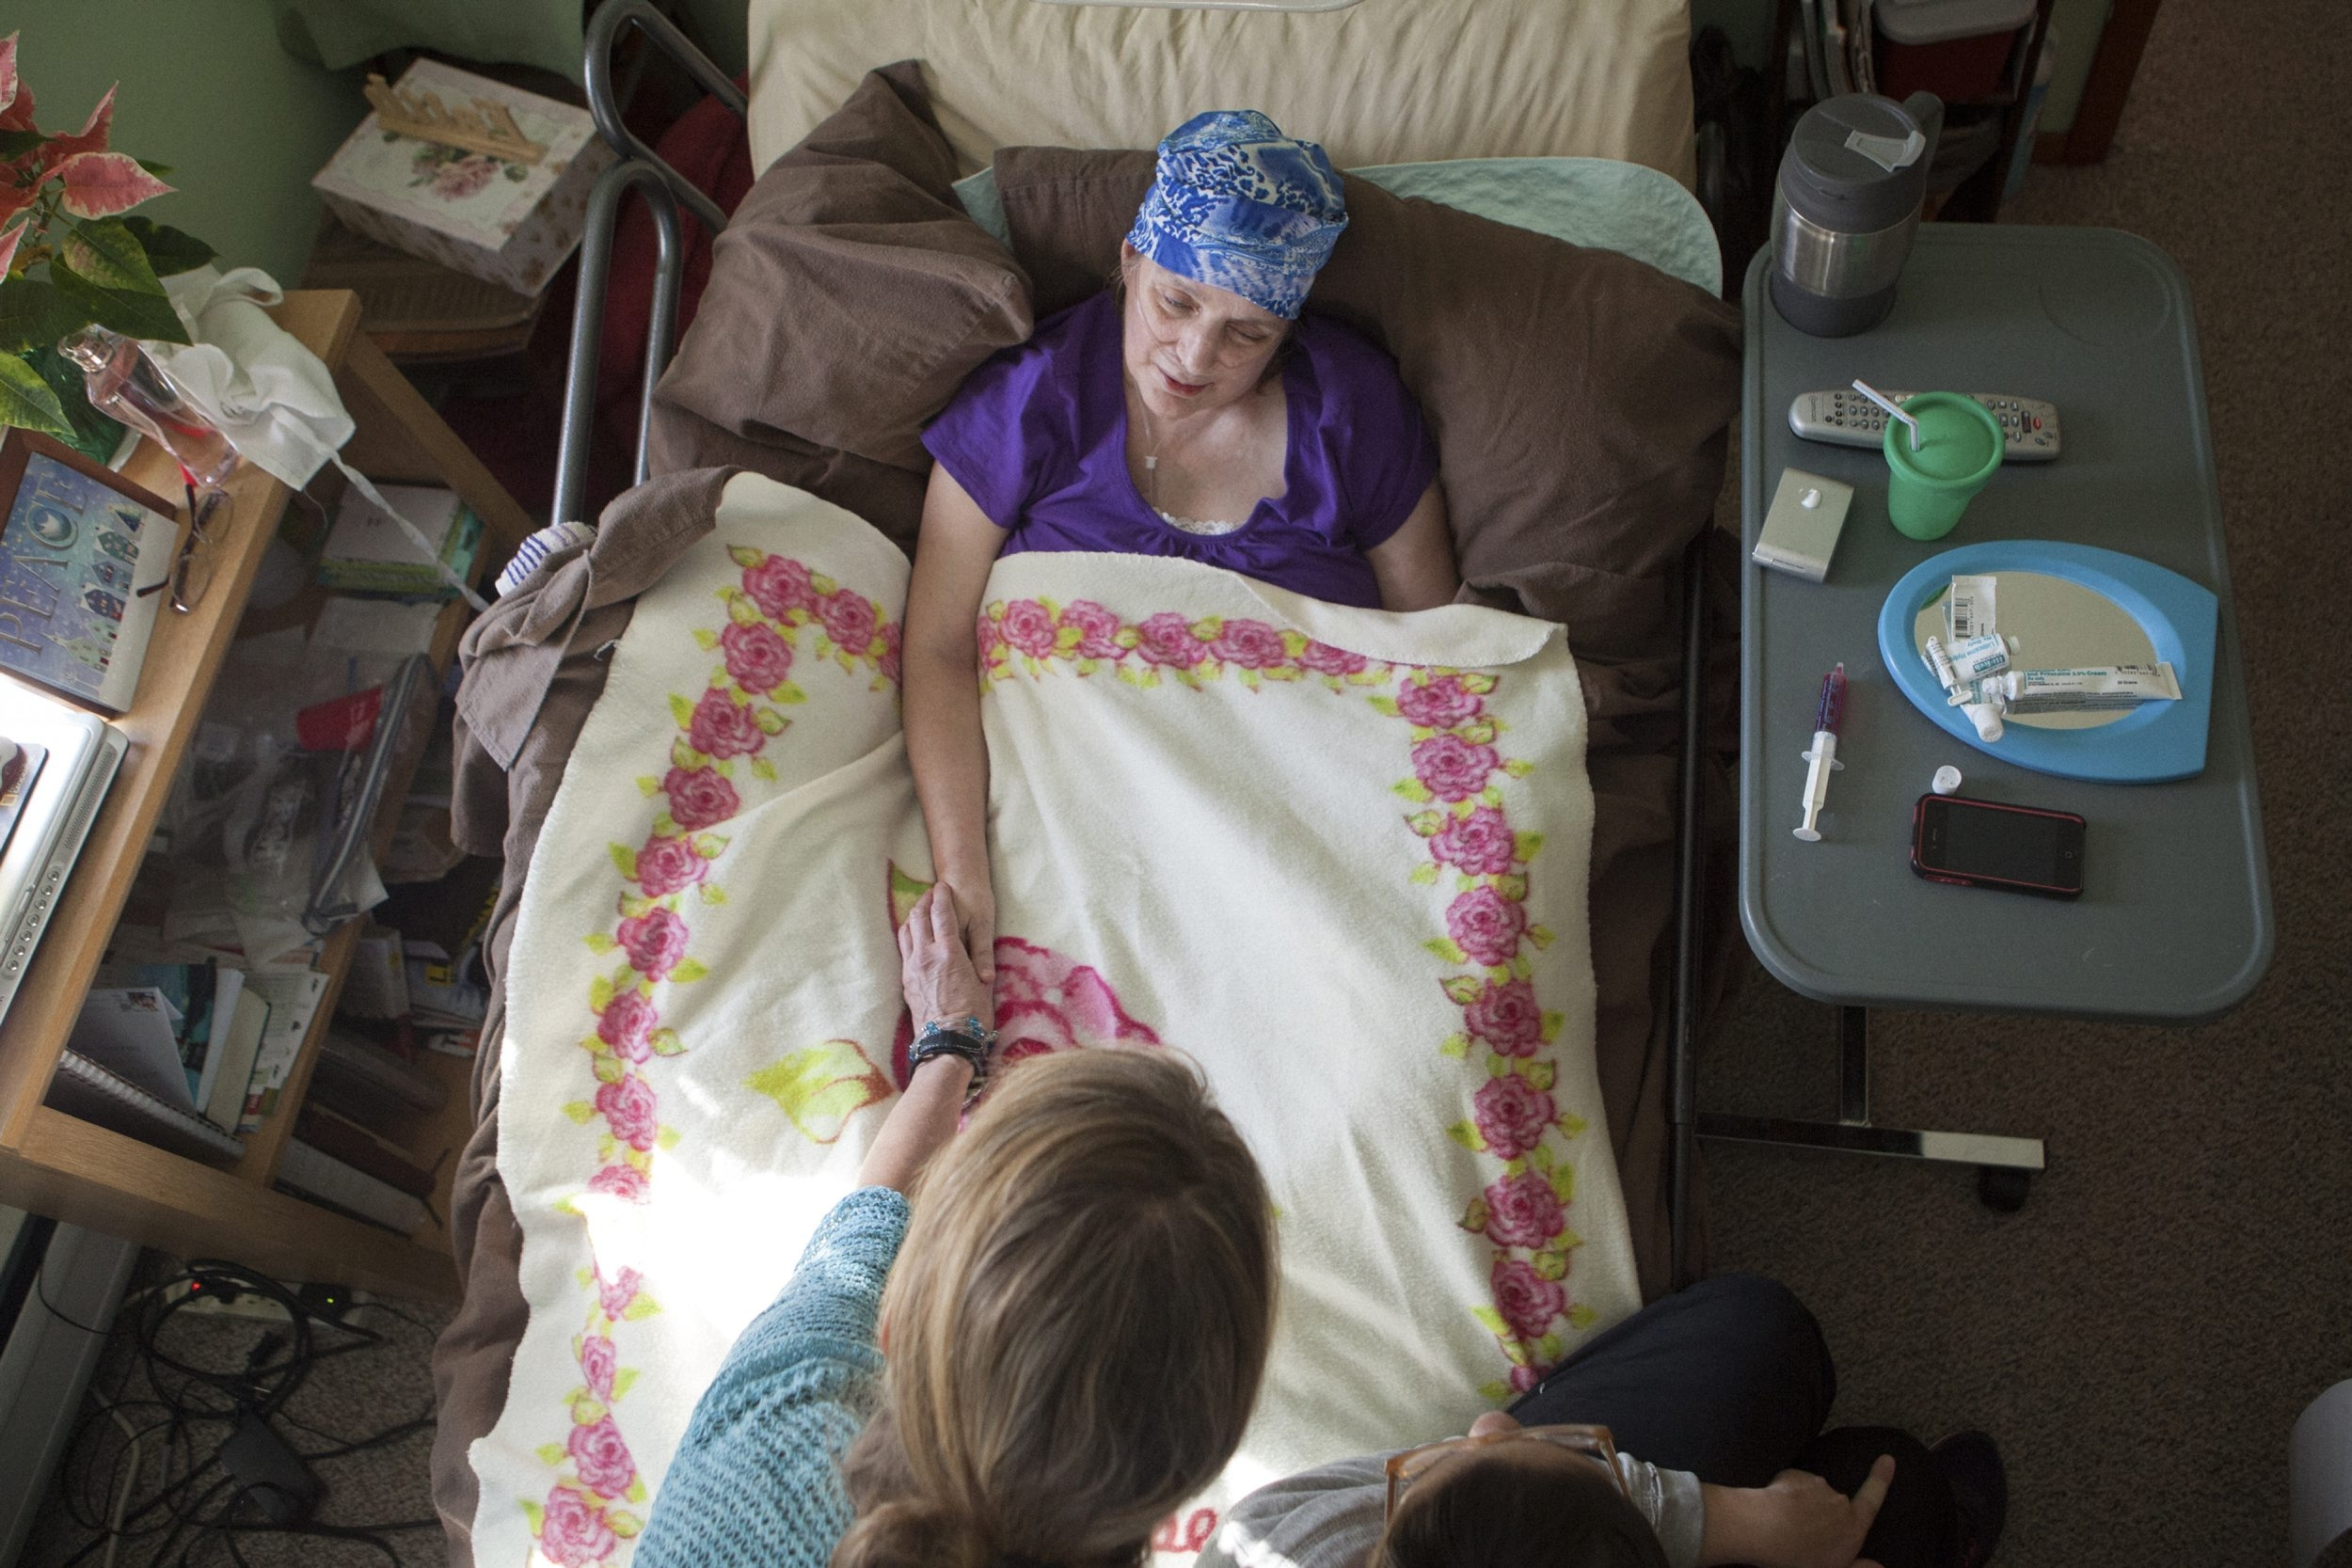 Martha Keochareon, a nurse terminally ill with pancreatic cancer, died in her home in Massachusetts in 2012 under the care of hospice and family members. She volunteered to be a subject of research for students.